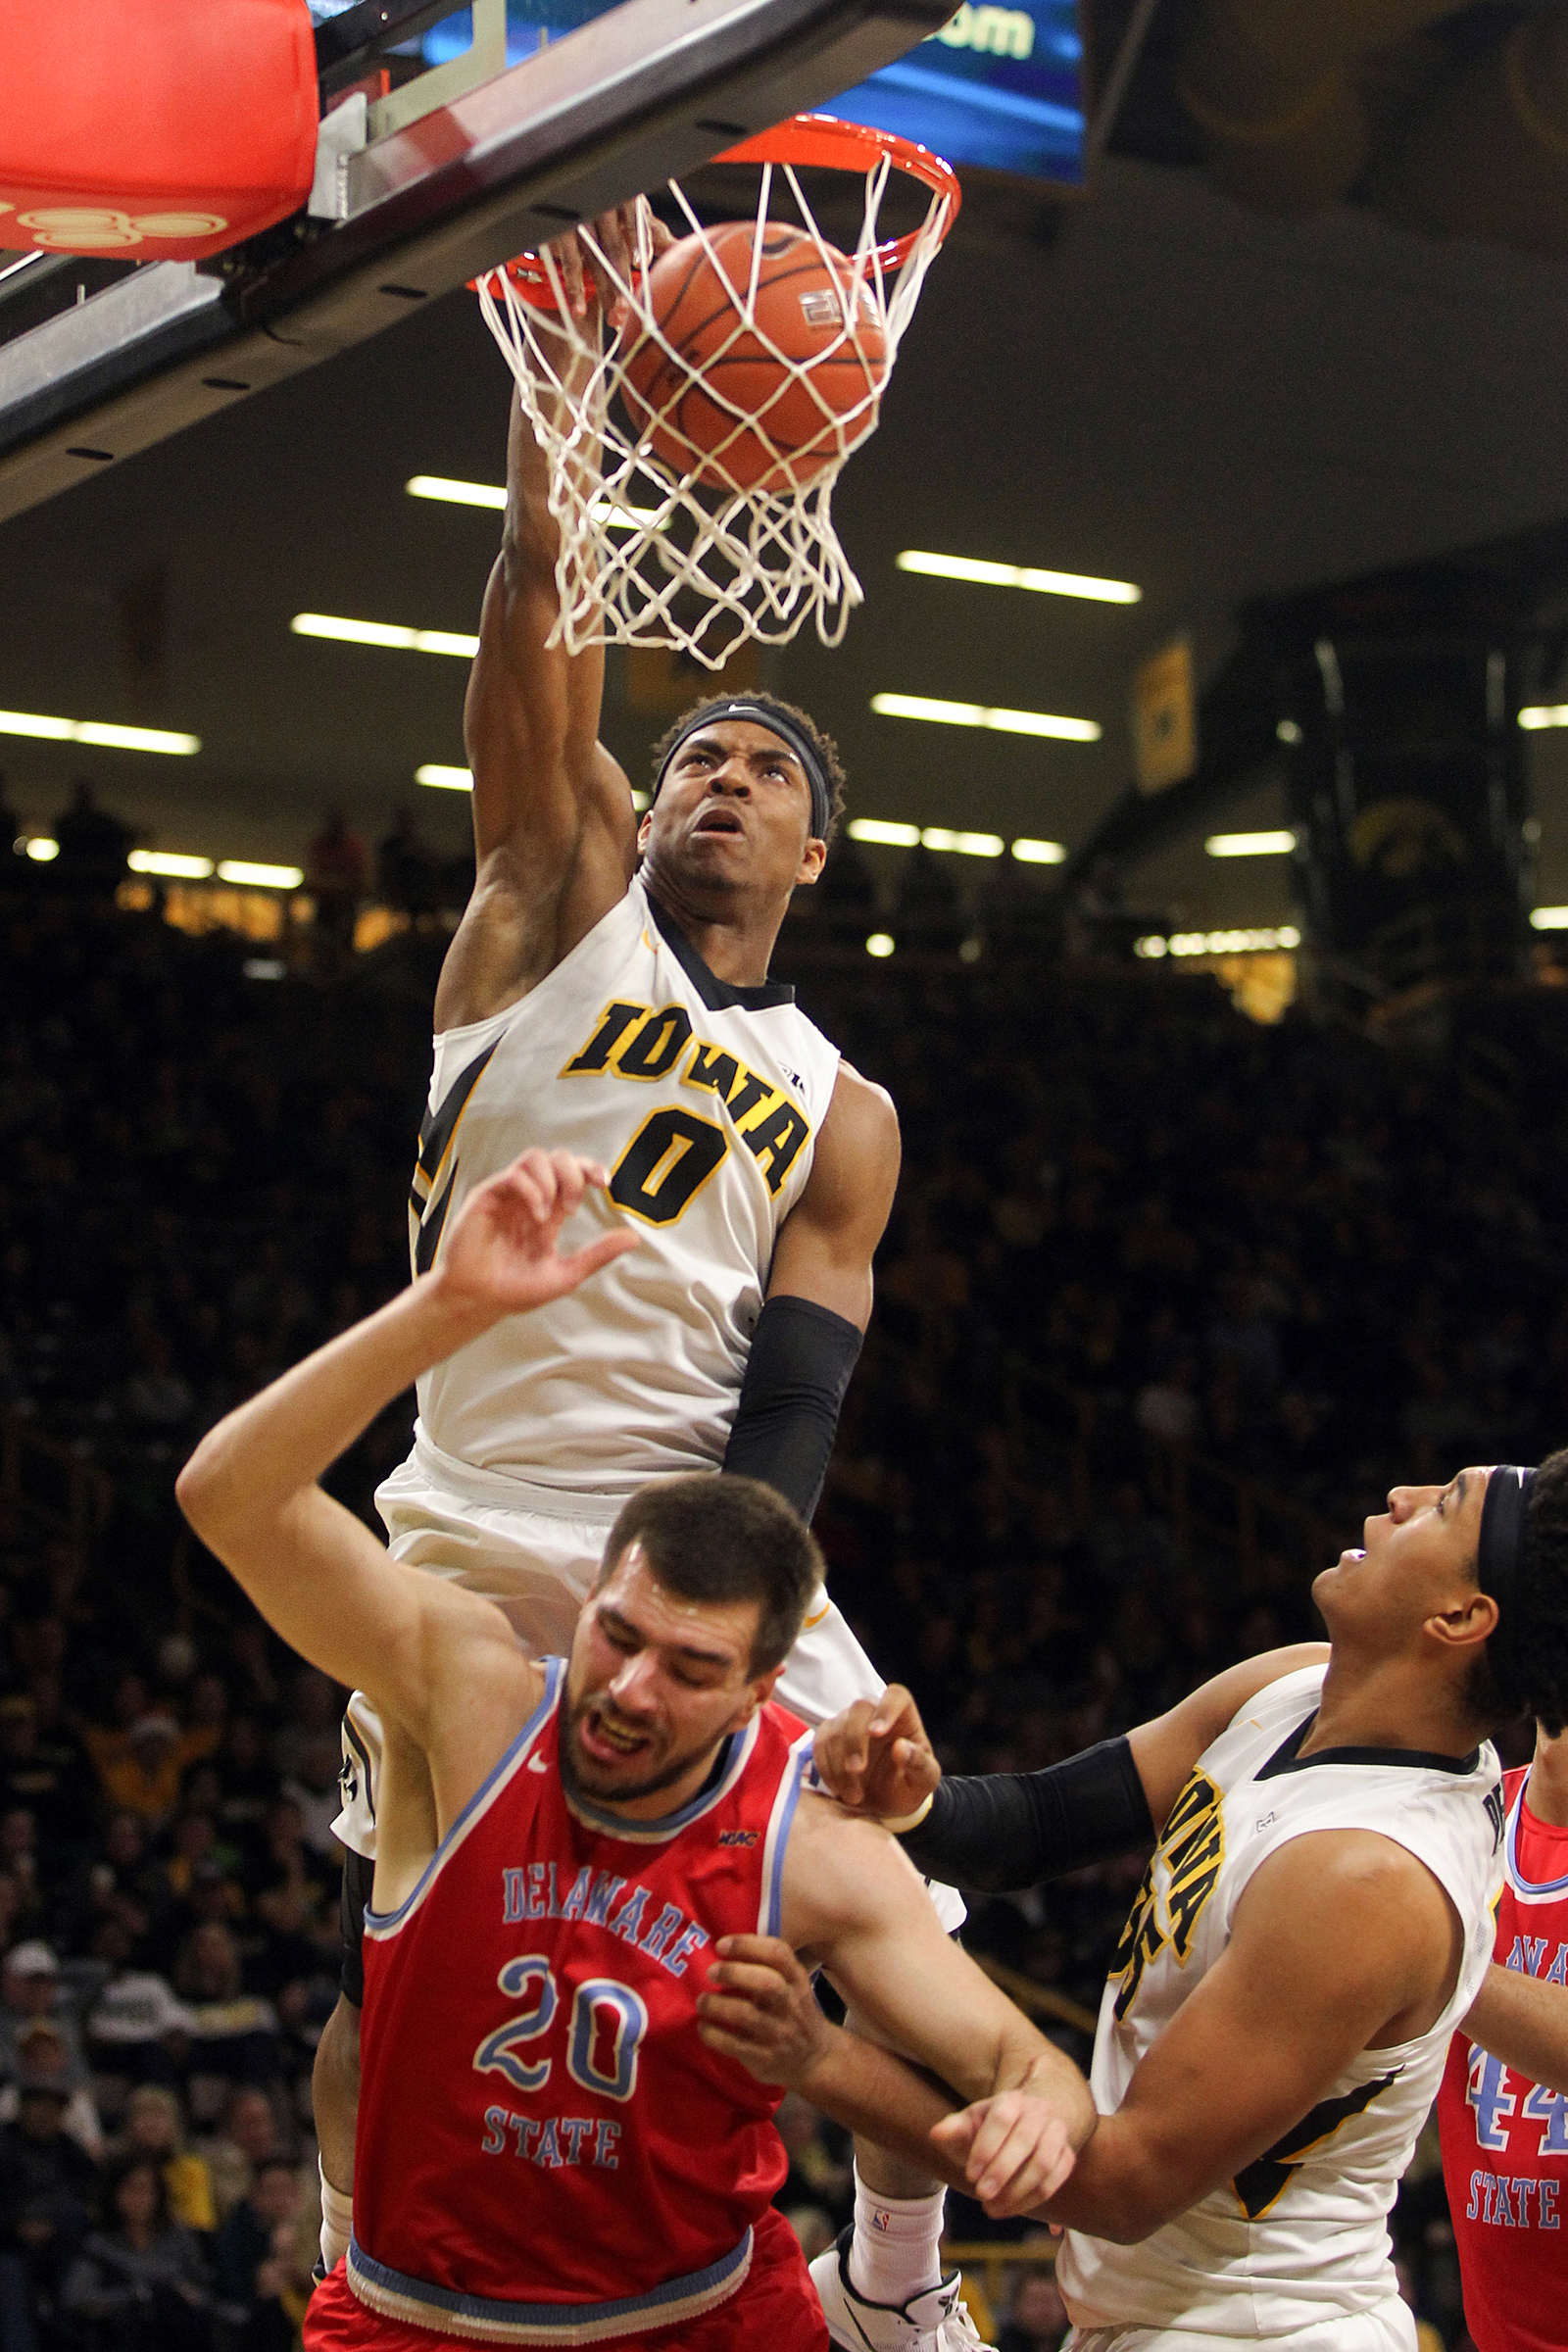 Iowa's Ahmad Wagner dunks the ball, but gets called for a foul, during the Hawkeyes' game against Delaware State at Carver-Hawkeye Arena.